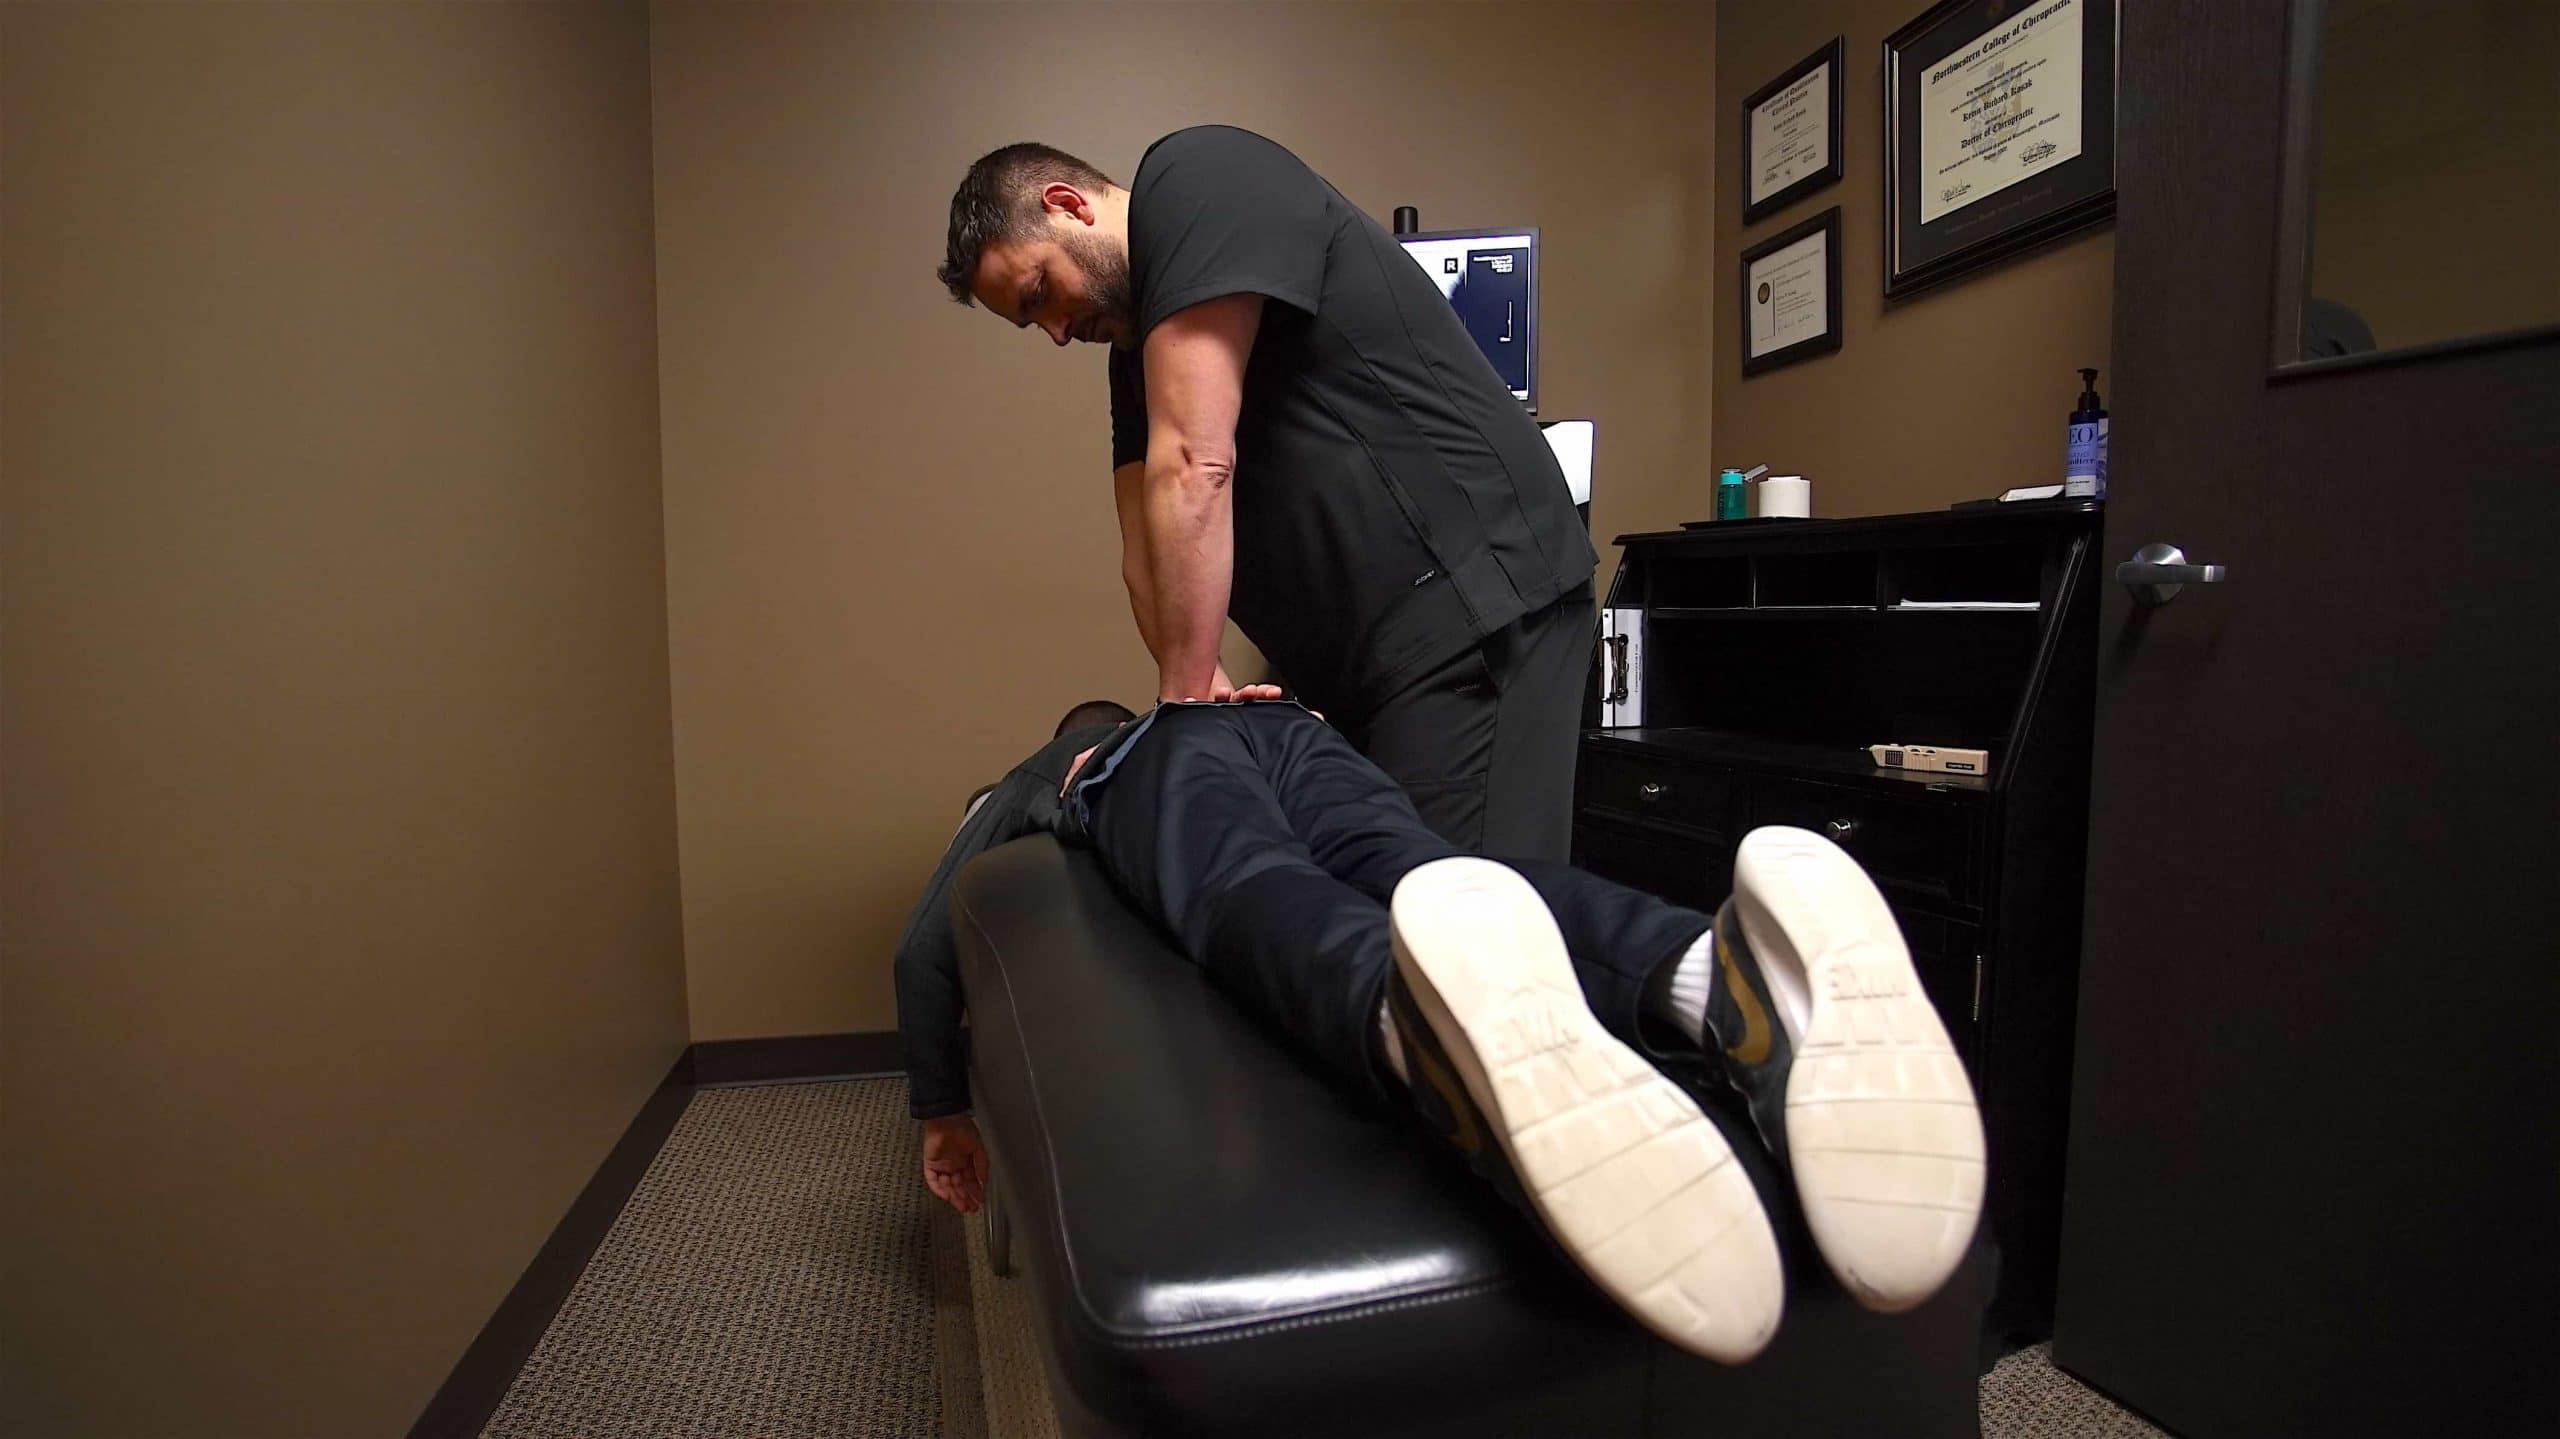 Chiropractor treats a work place injury patient in omaha